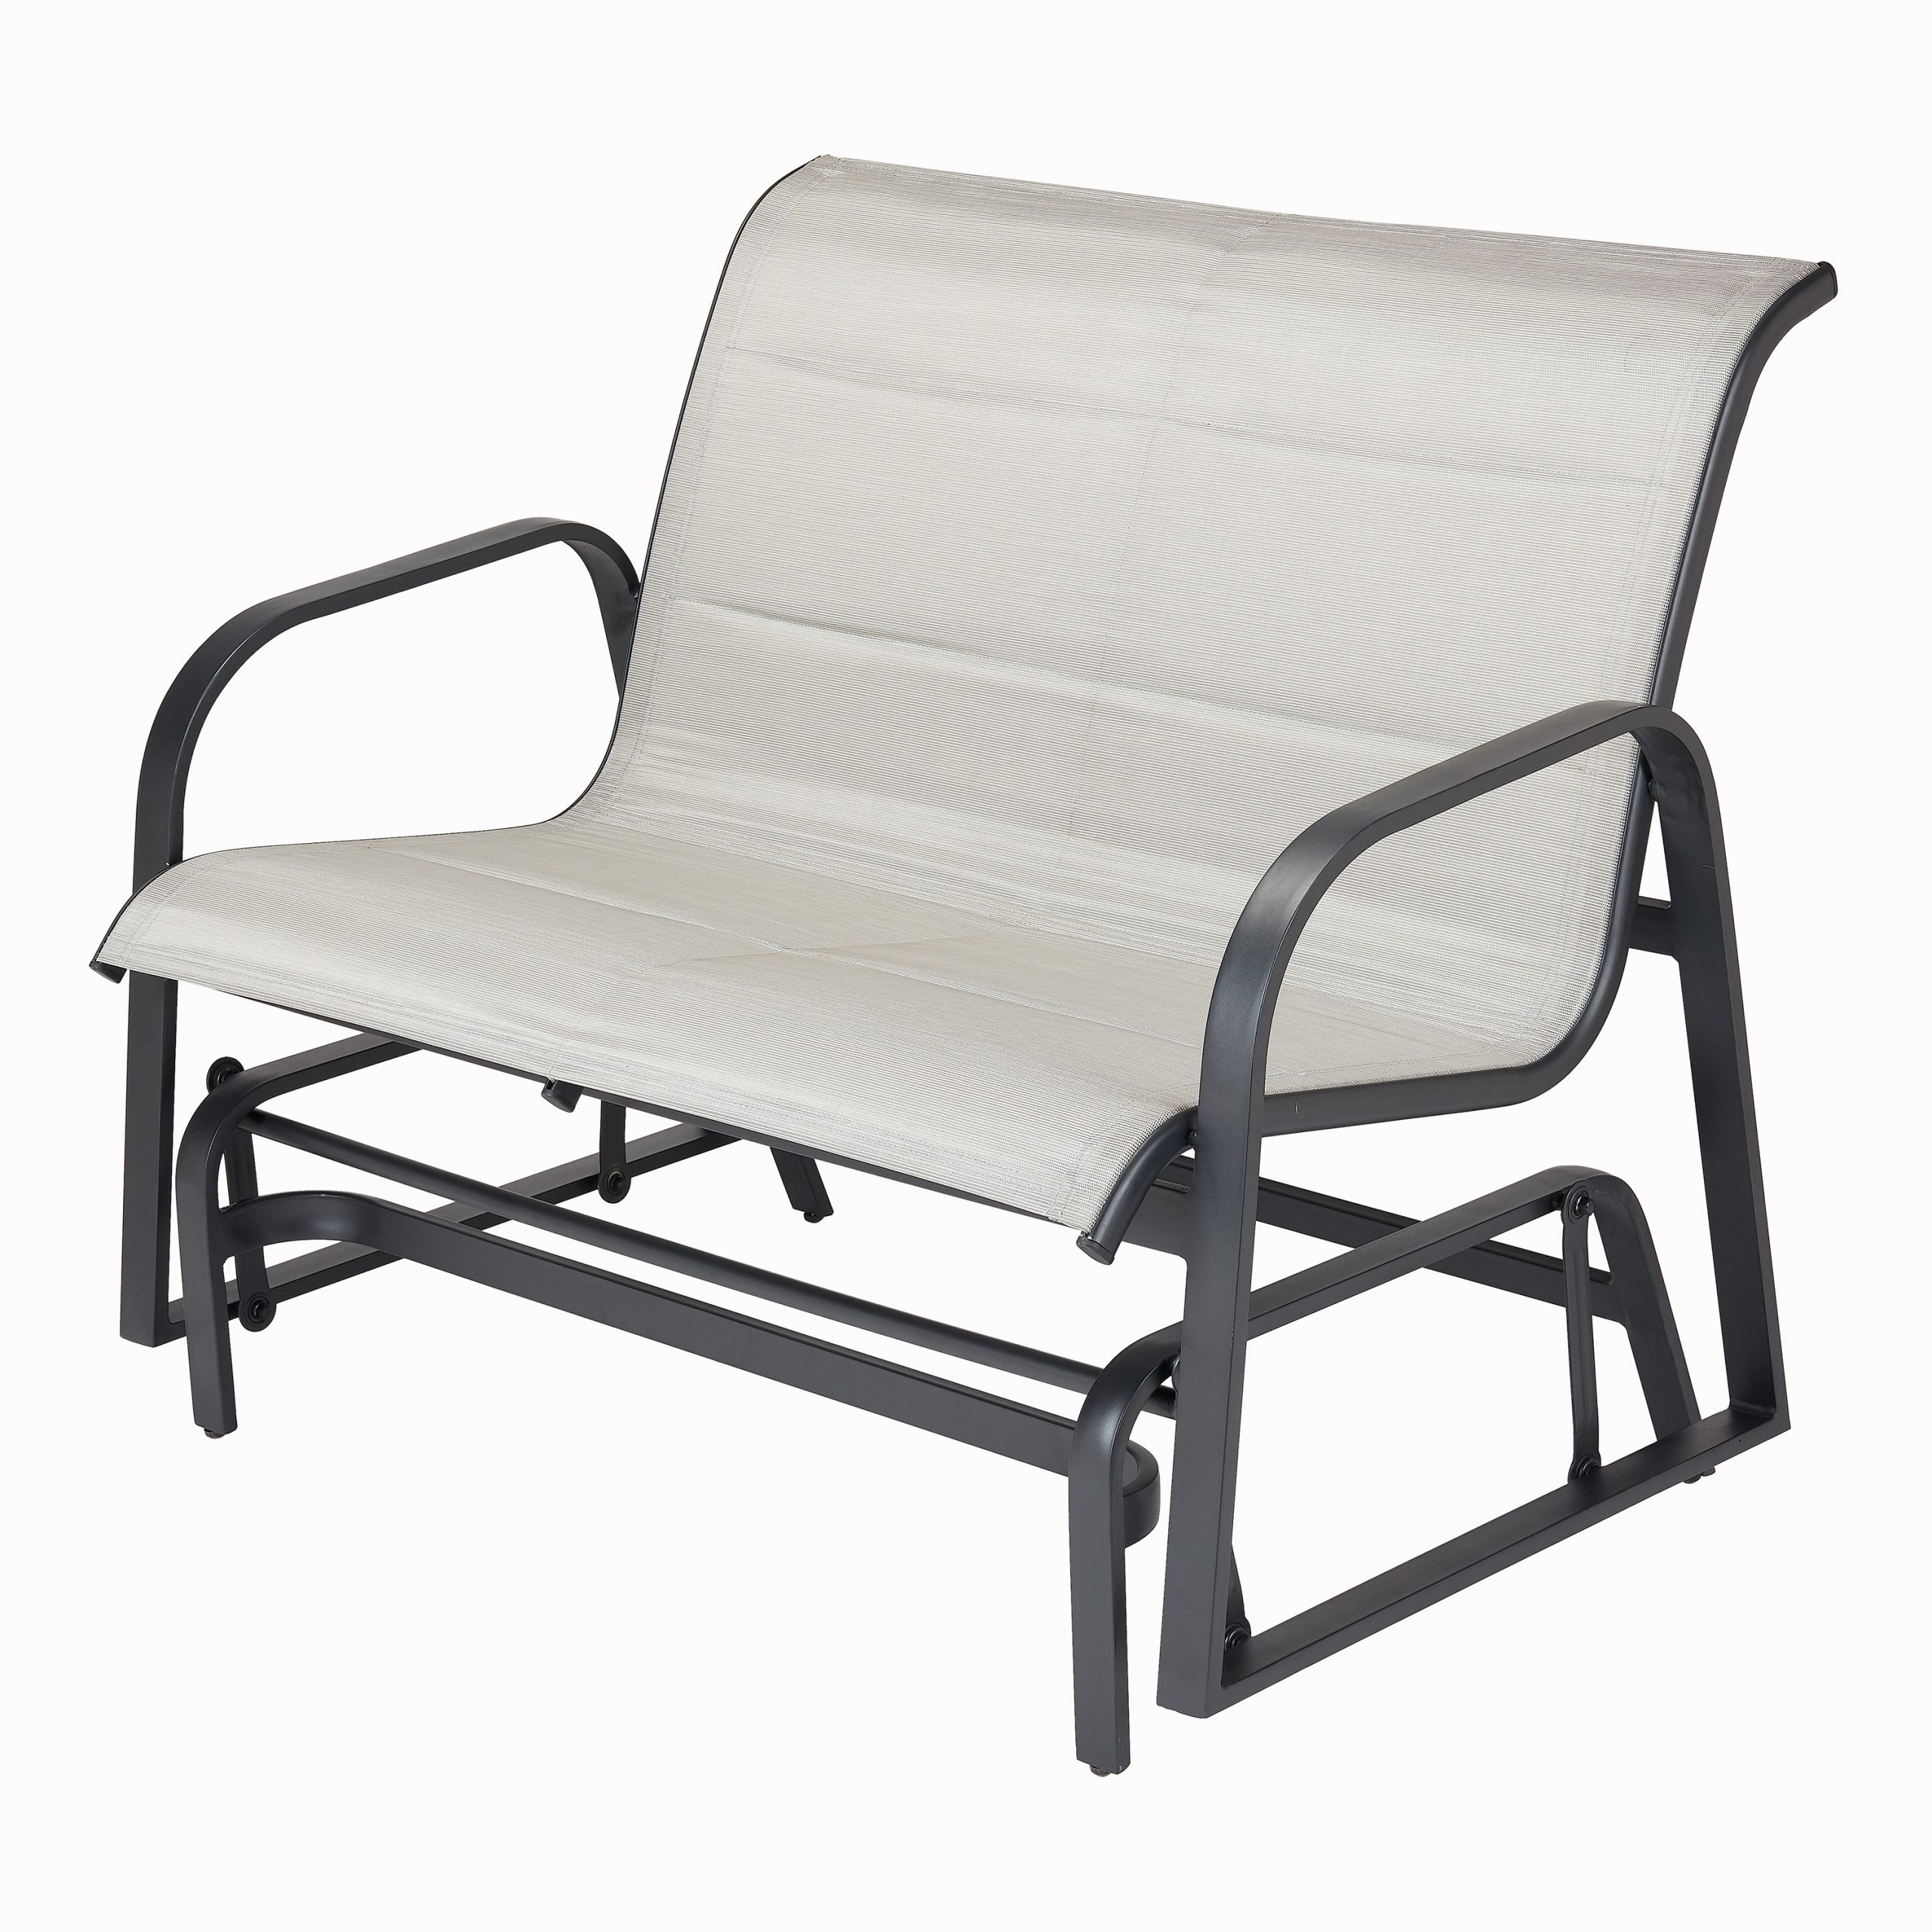 Better Homes & Gardens Montrose Padded Sling Glider Bench – Walmart With Padded Sling Double Glider Benches (View 9 of 25)